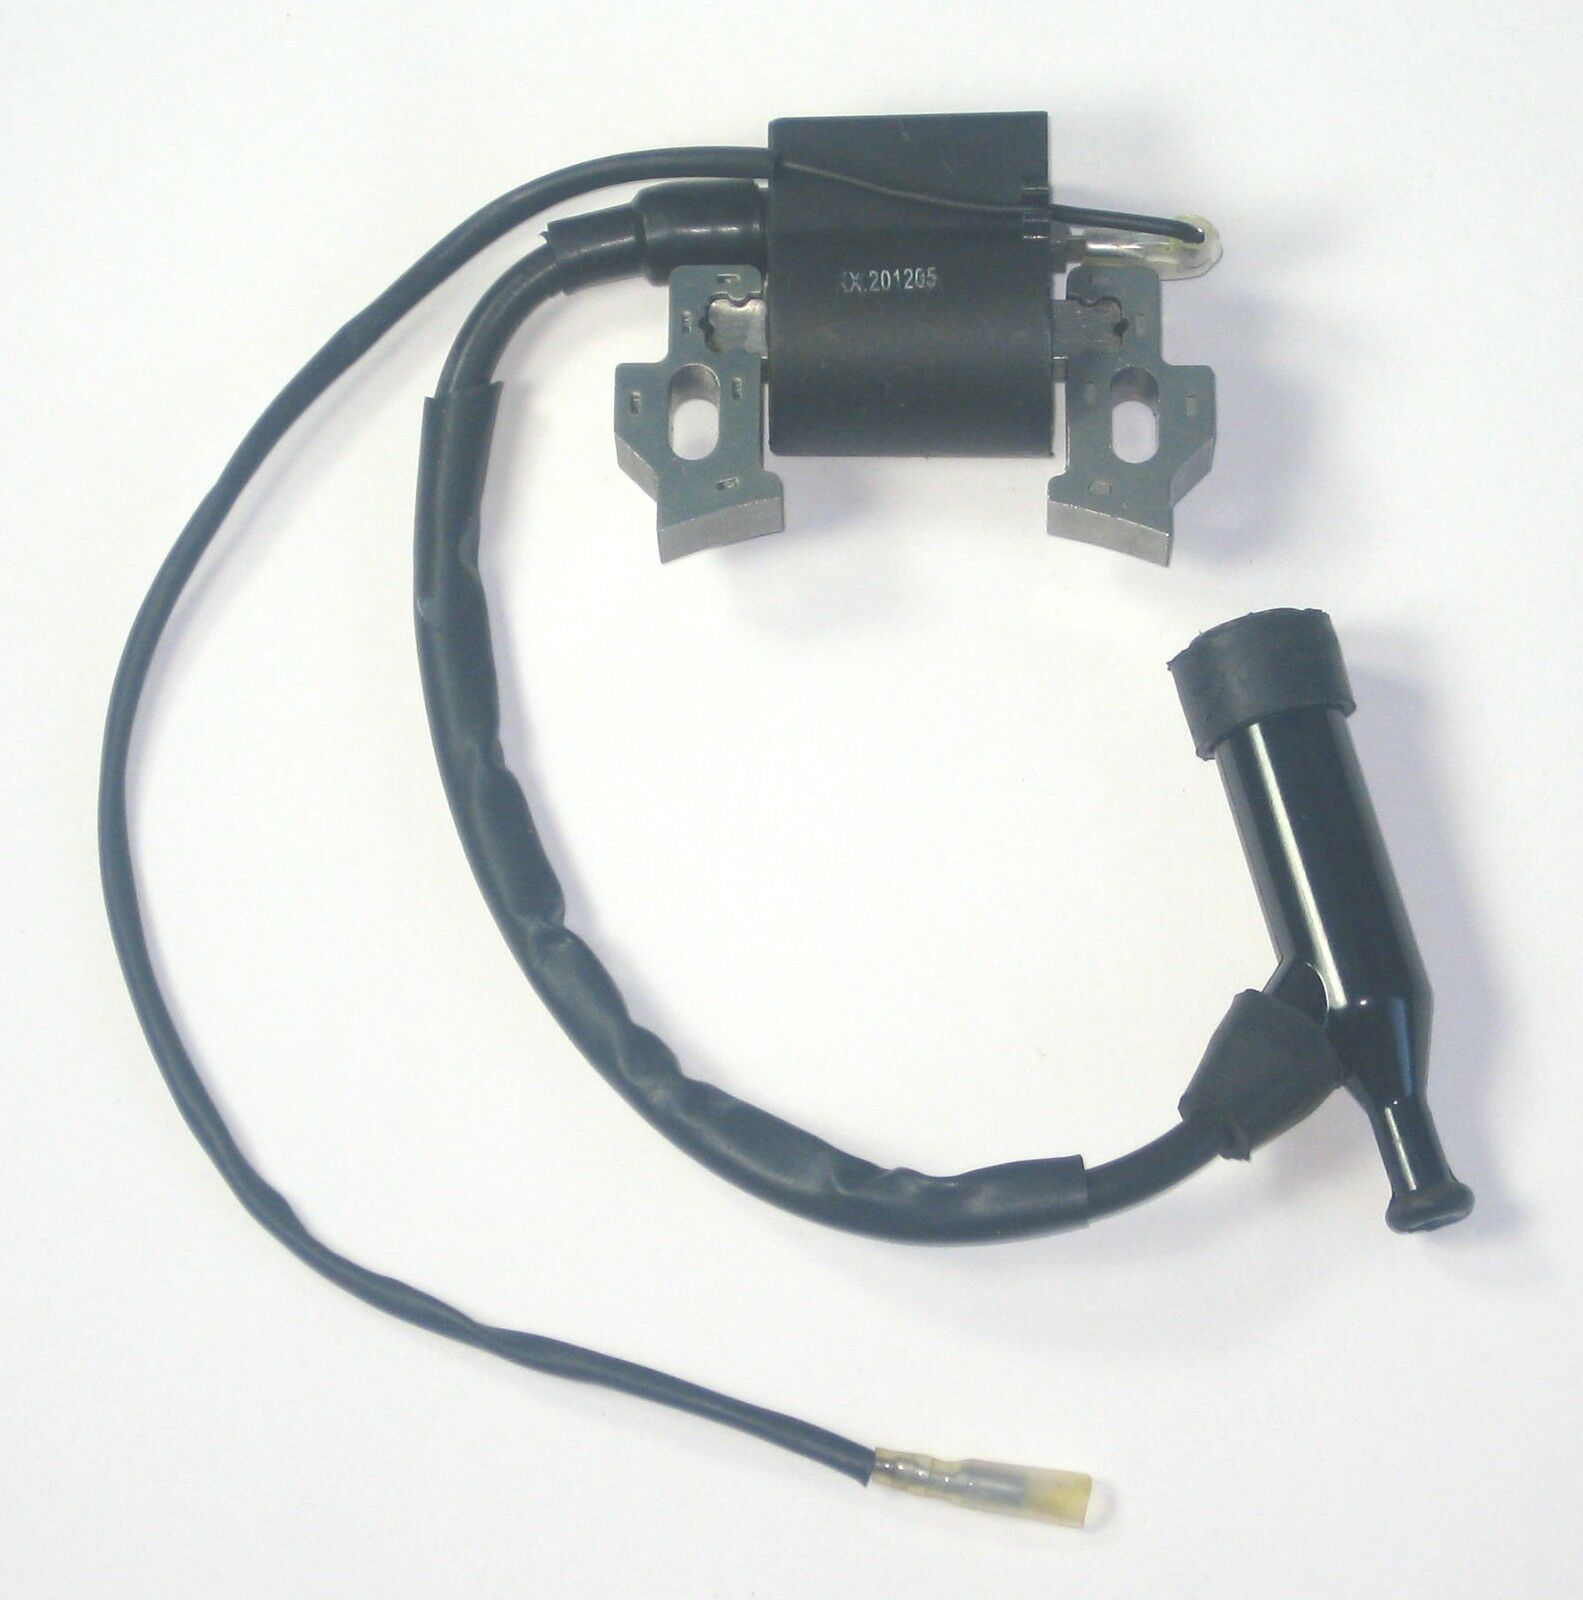 Gas Honda Hr214 Hr215 Hrm215 Engine Motor Lawn Mower Ignition Coil Manual On Diagram Picture 1 Of